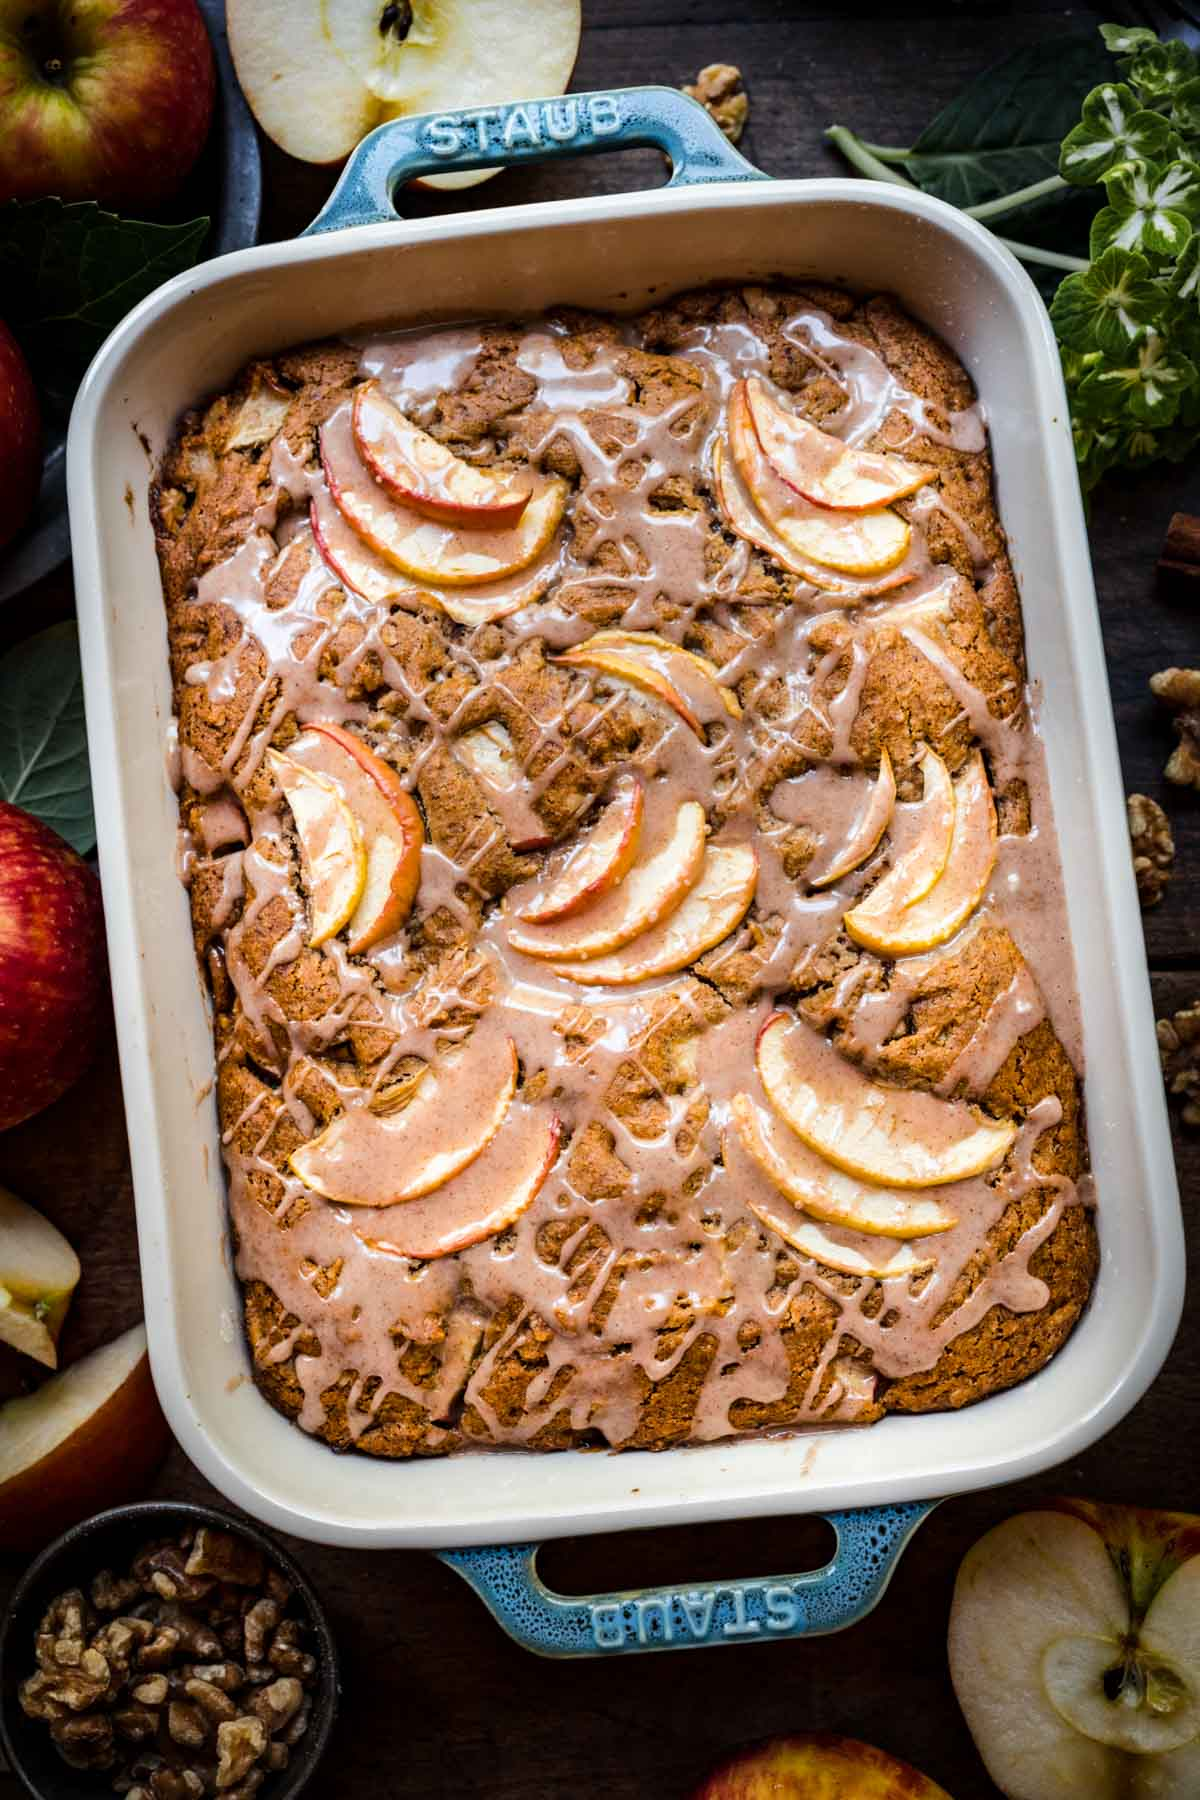 Overhead view of finished apple walnut cake with glaze in a baking dish.